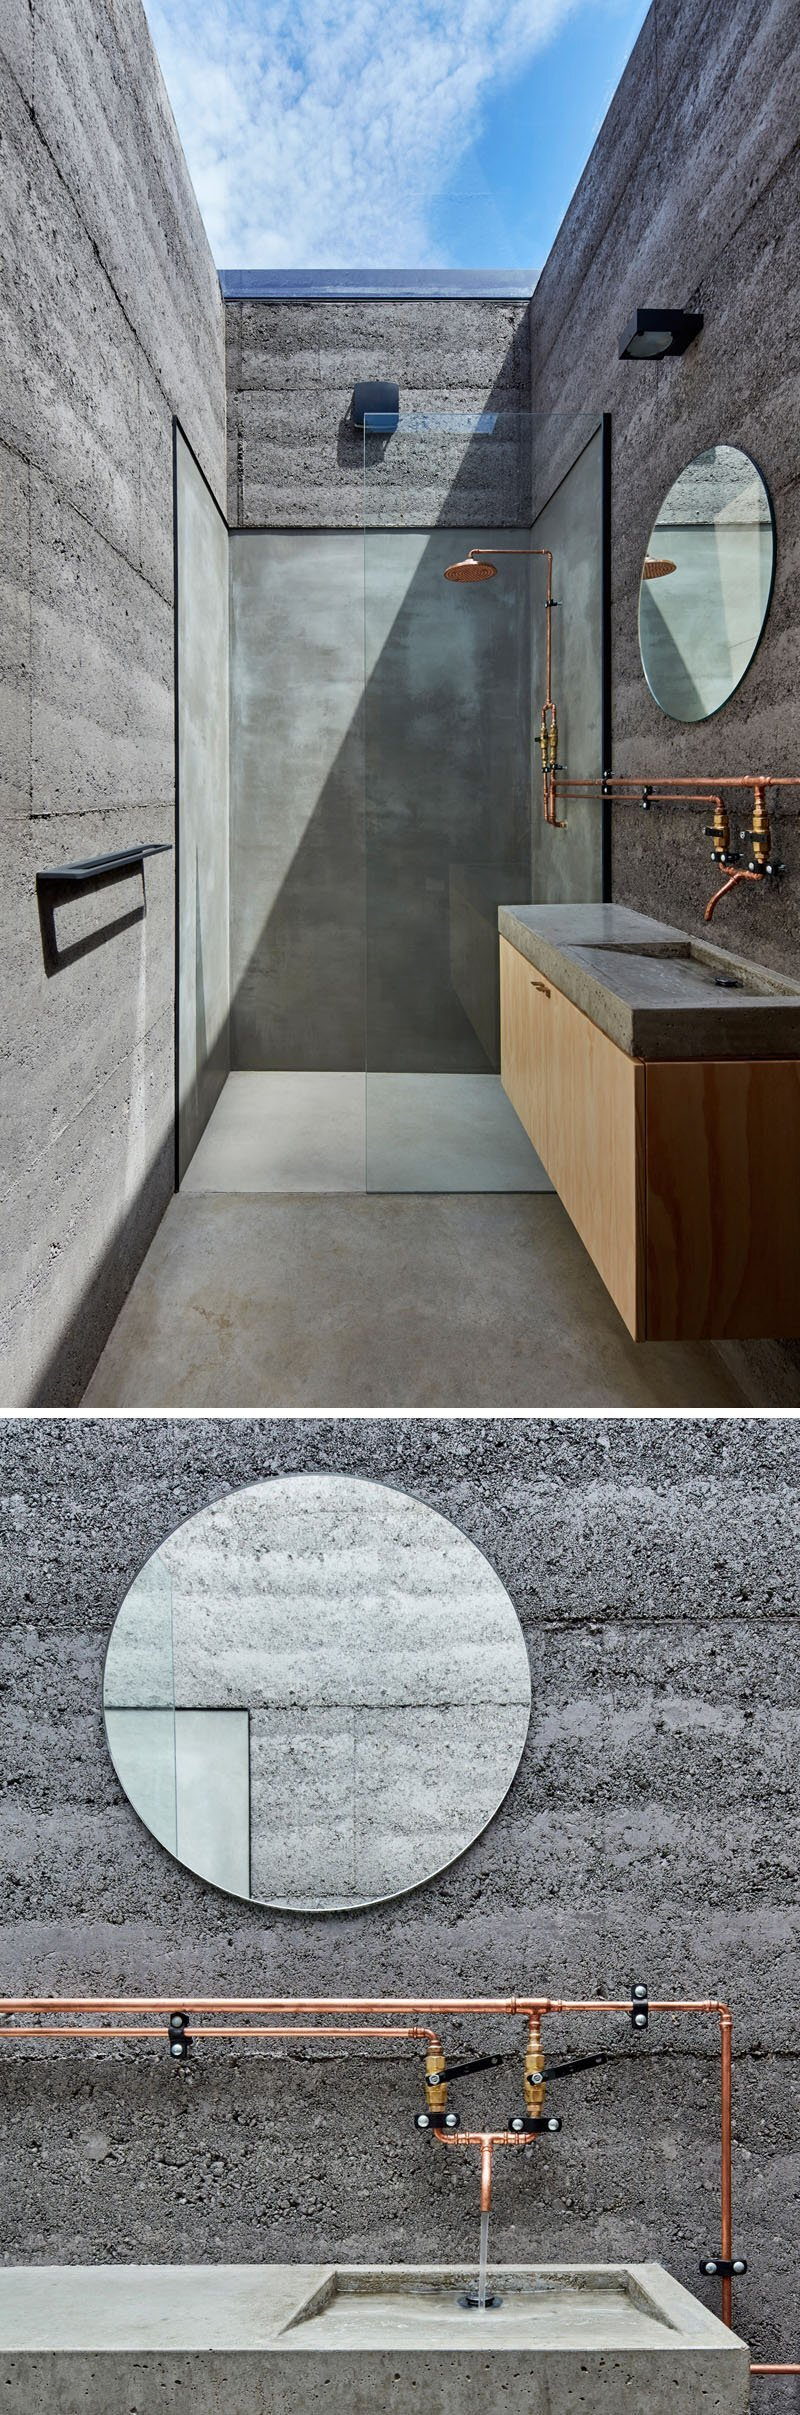 Balnarring Retreat - Branch Studio Architects - Australia - Bathroom - Humble Homes